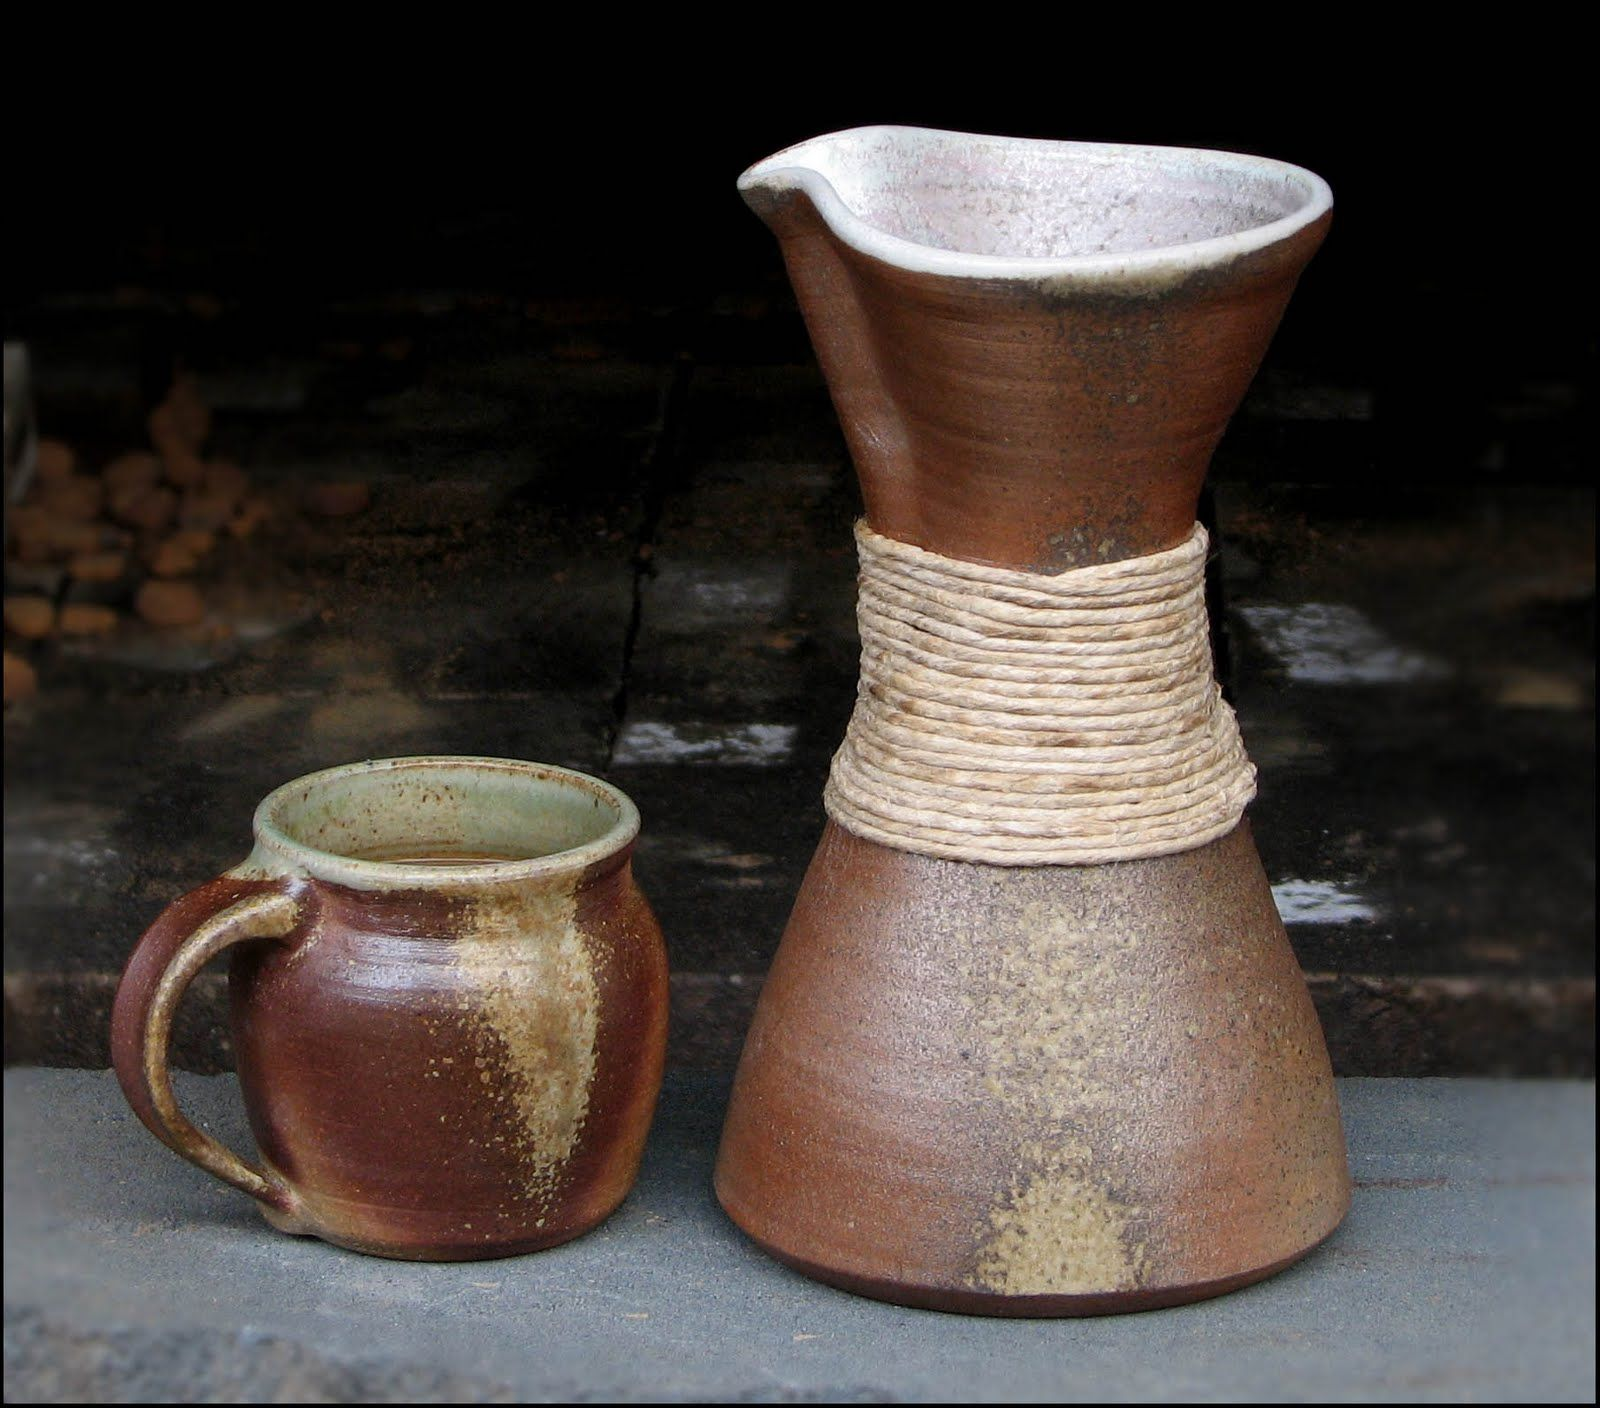 Clay Chemex made by Michael Mahan. I think he sells them ...